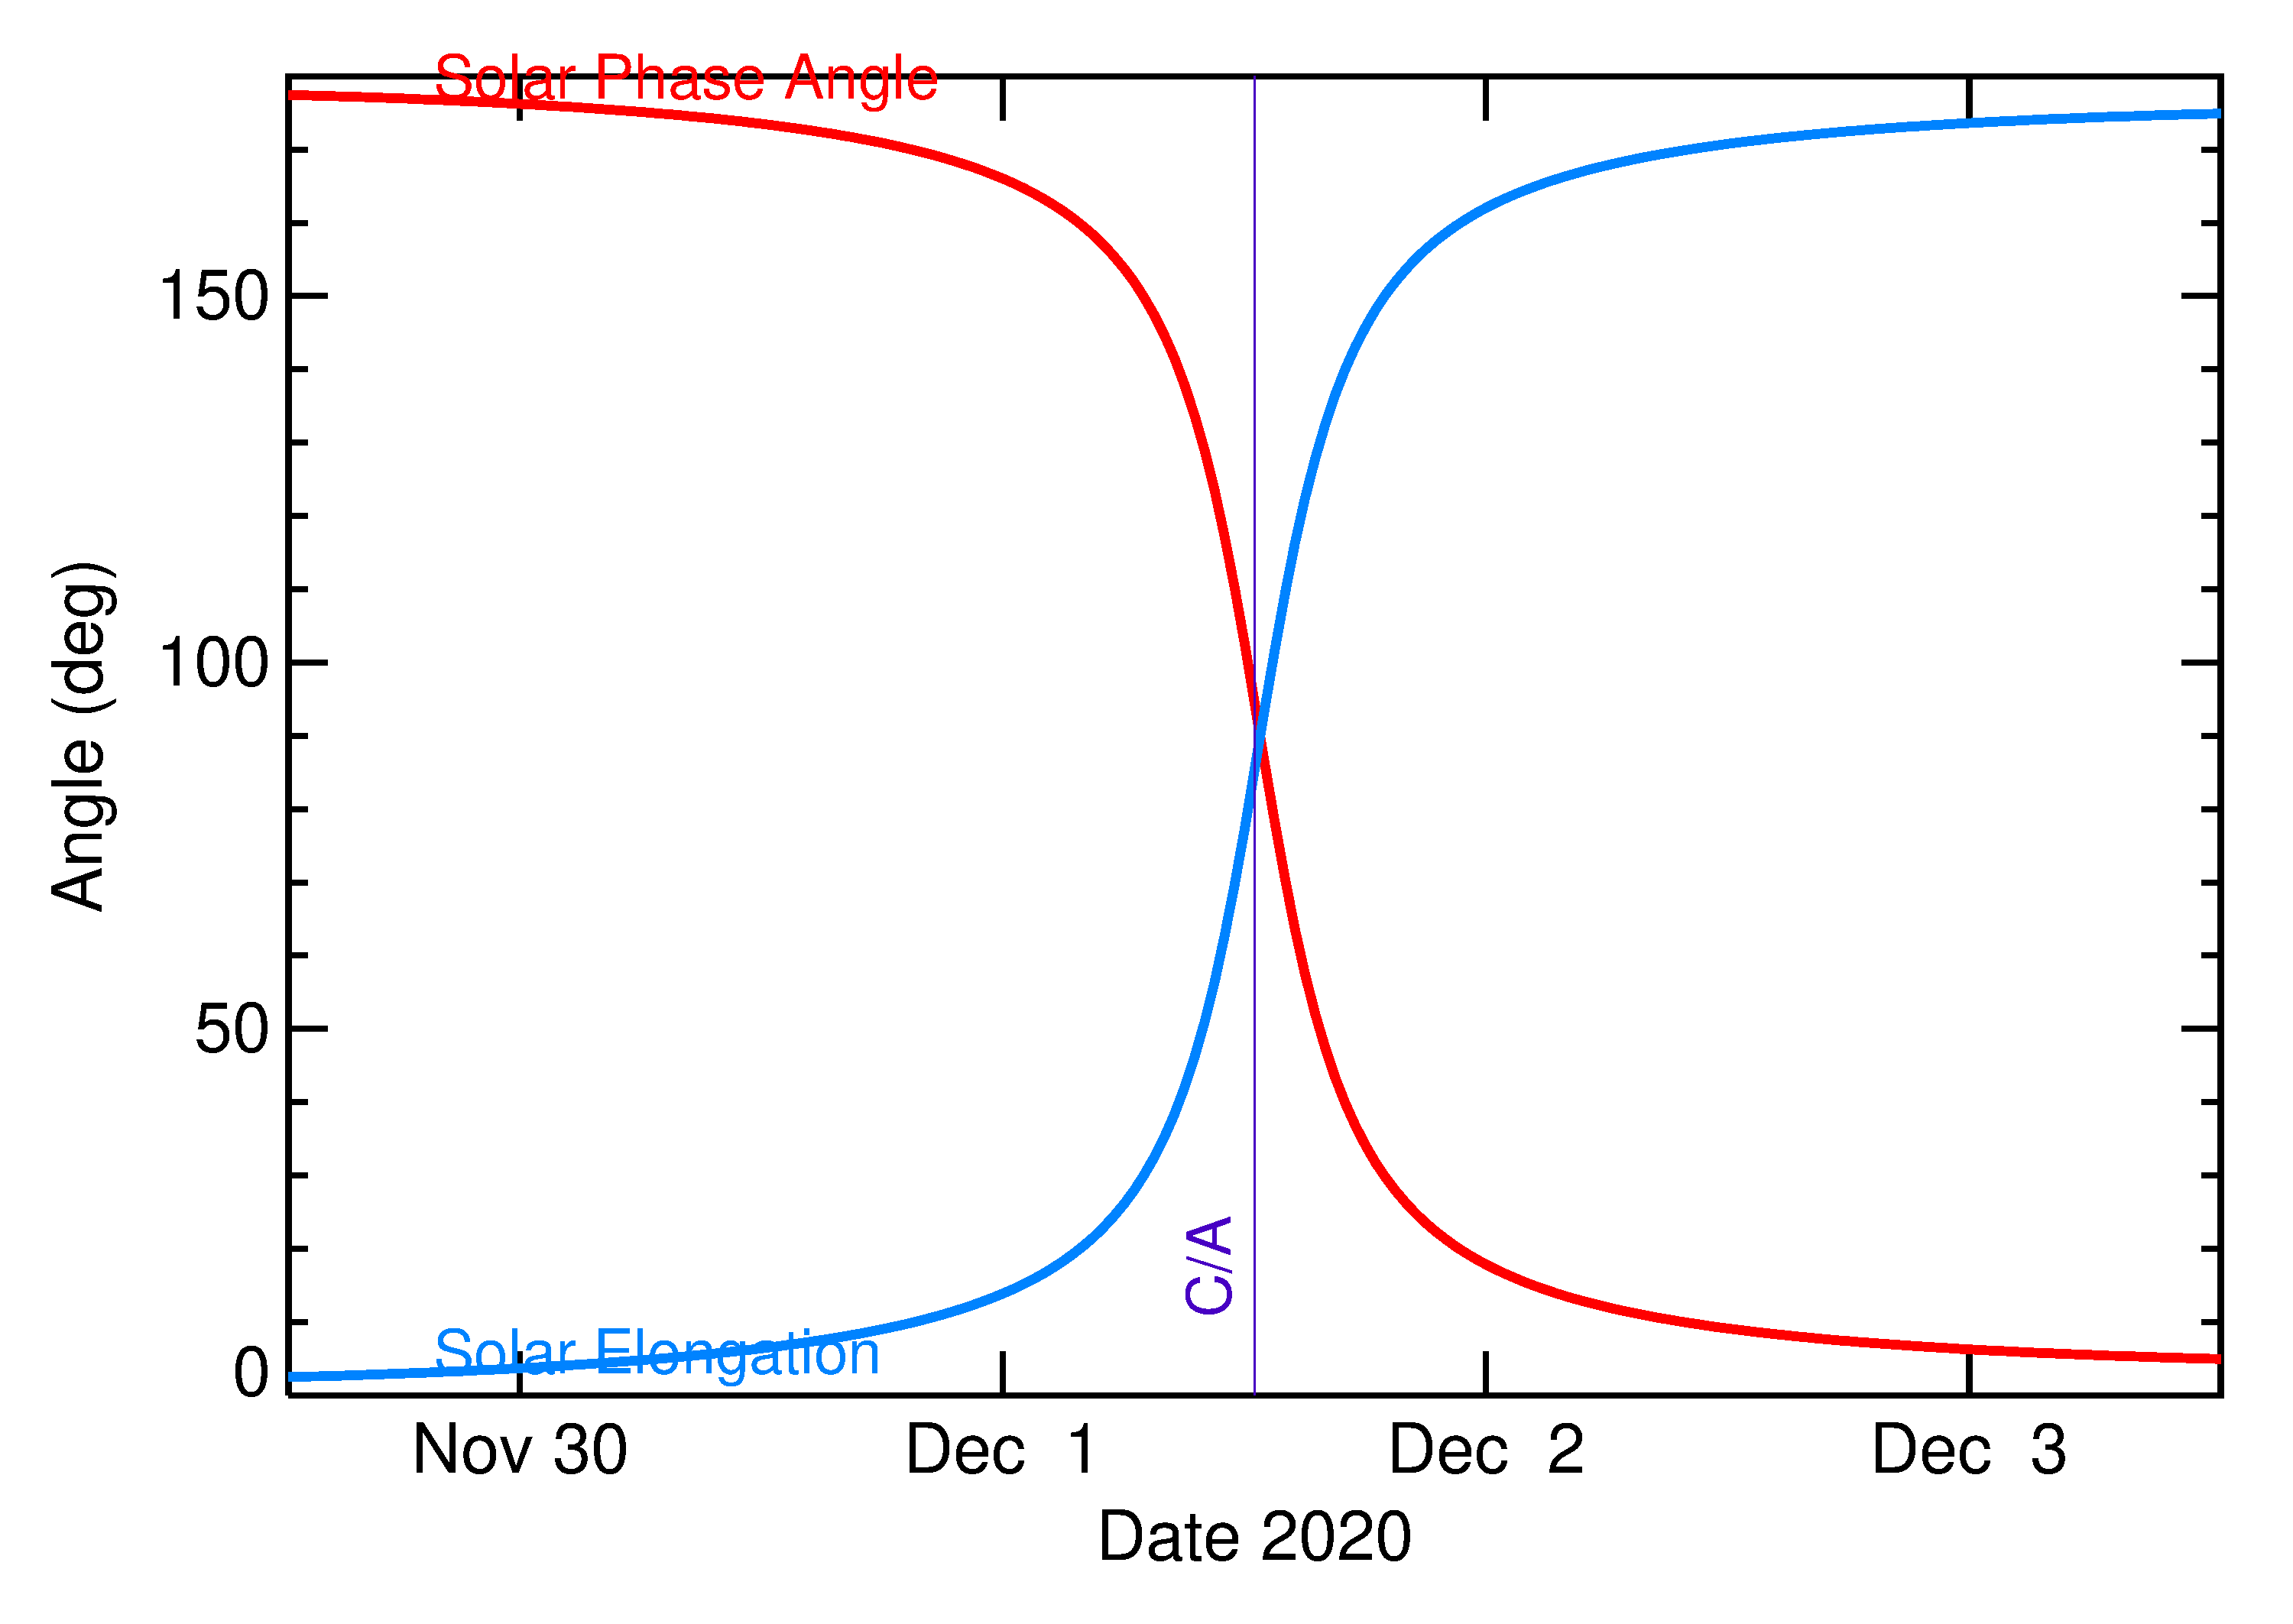 Solar Elongation and Solar Phase Angle of 2020 XE in the days around closest approach